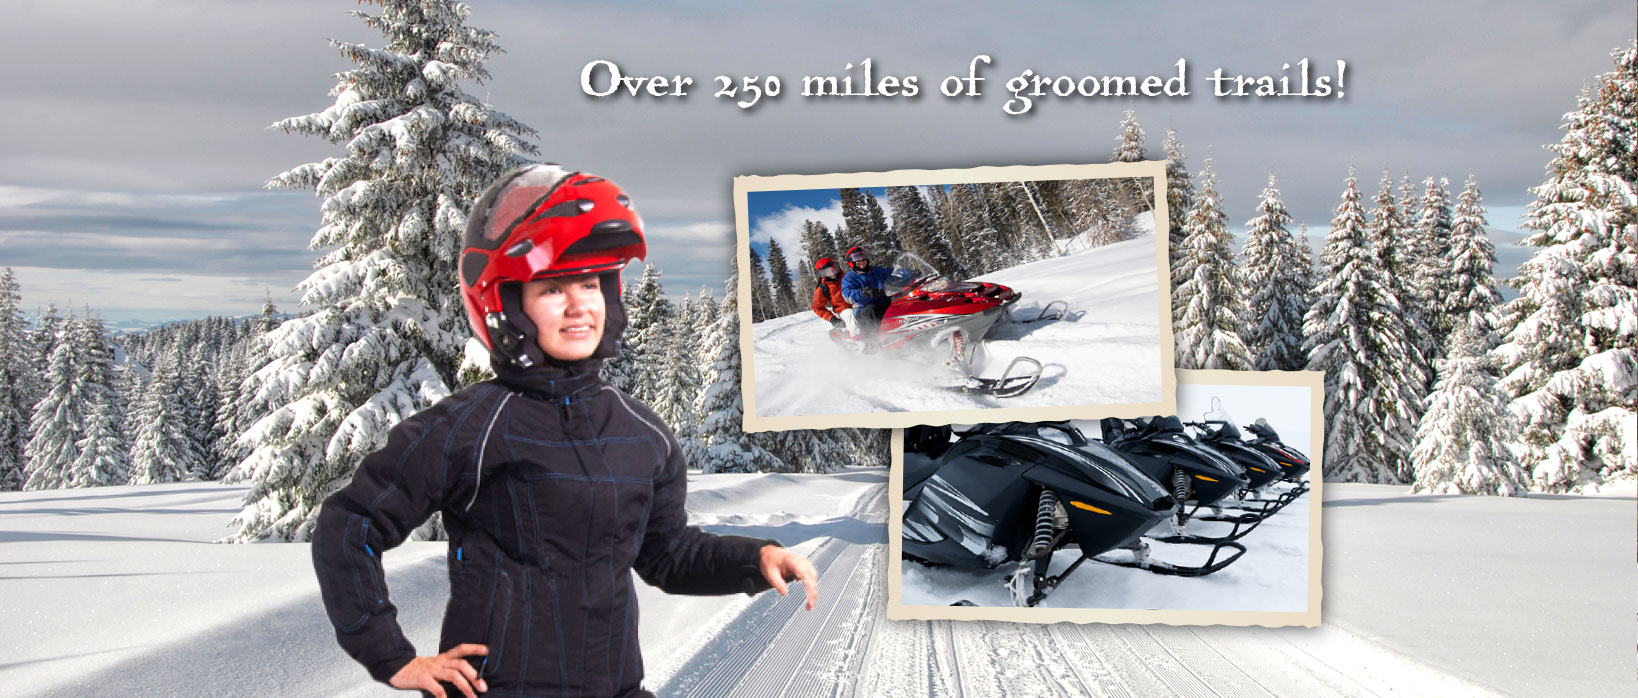 Over 250 miles of groomed trails!